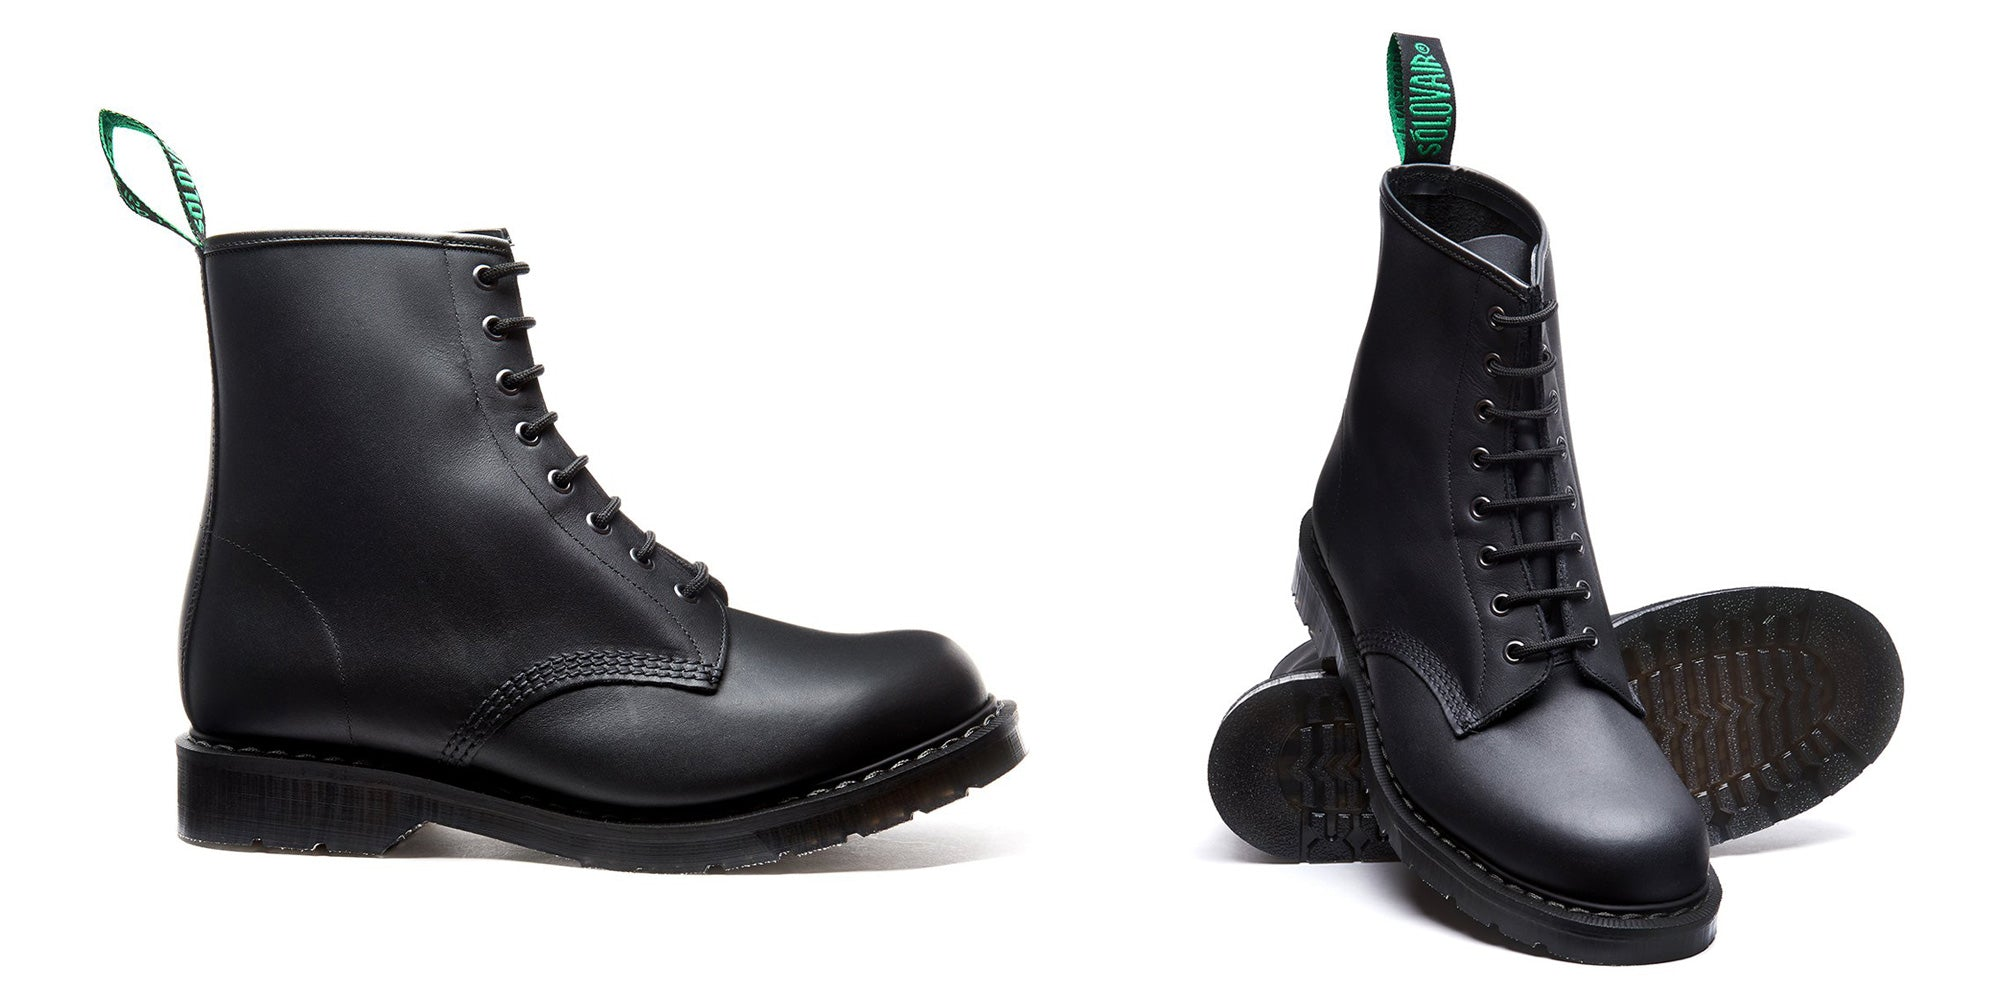 Solovair Classic Black Greasy 8 Eye Derby Boot - Made in England